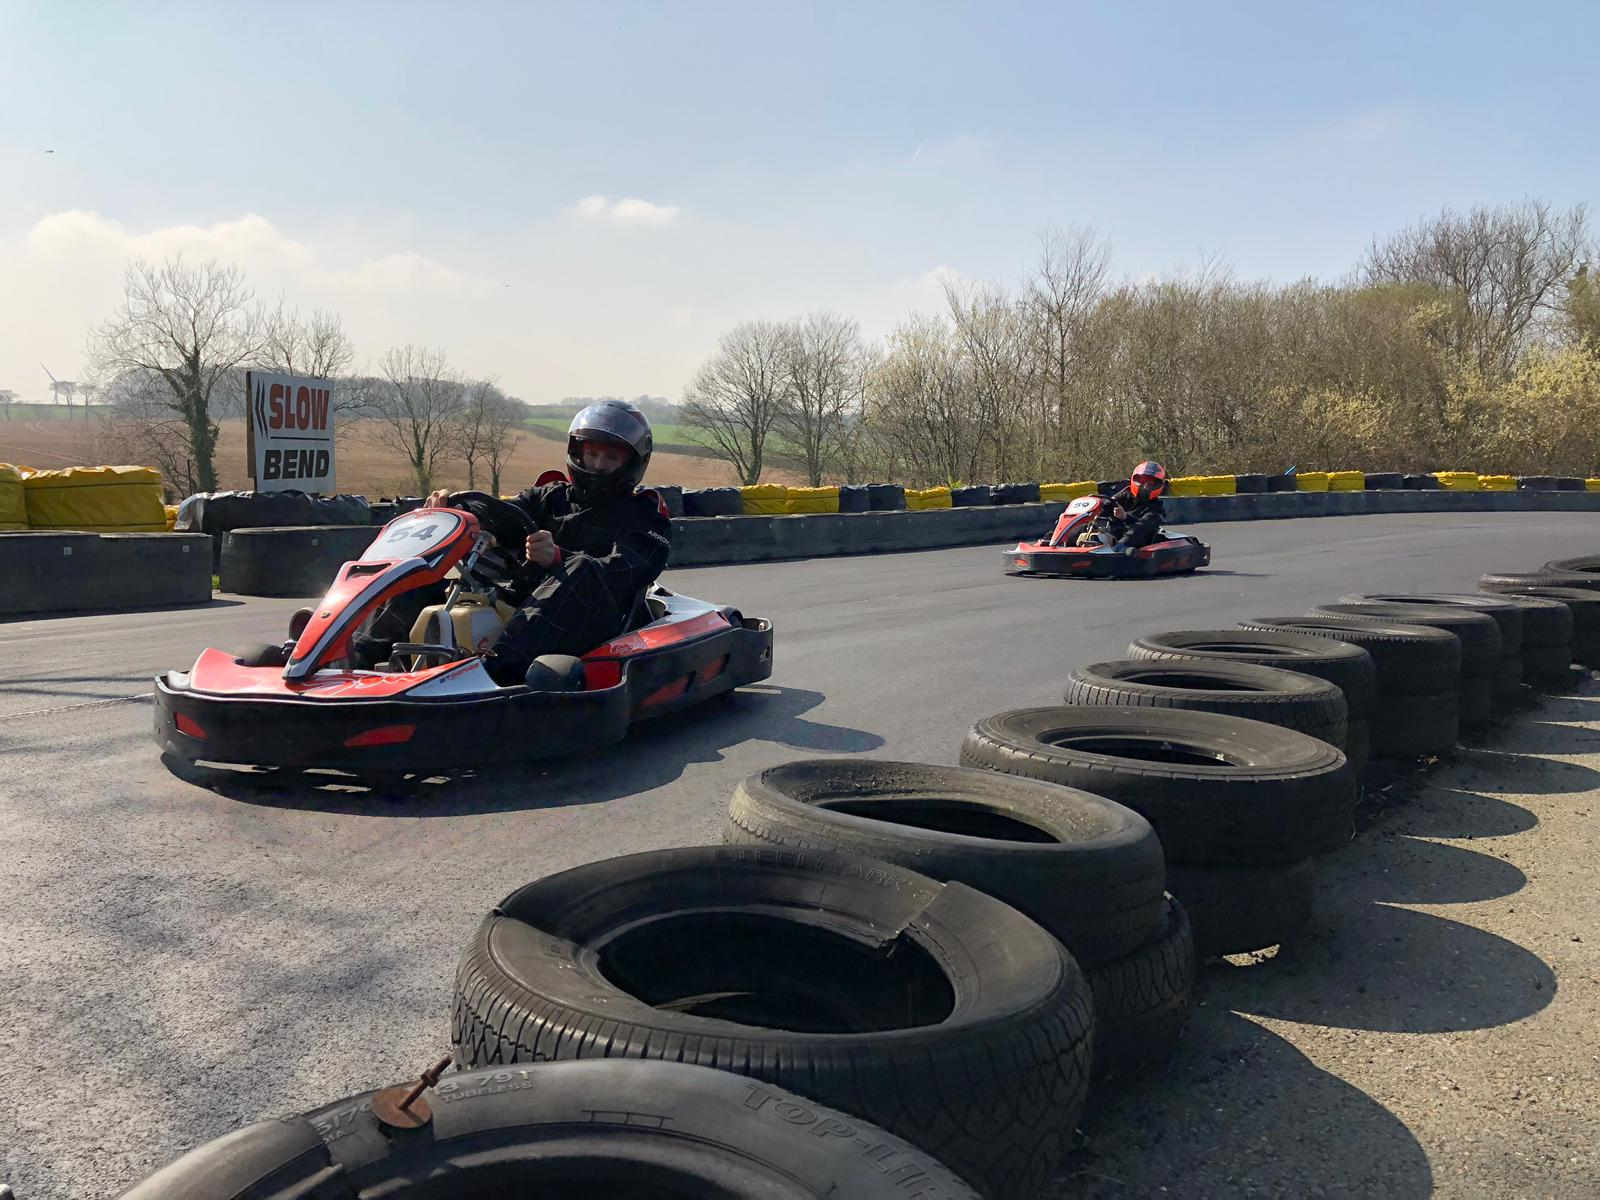 go-karting at Adrenalin Quarry in Cornwall